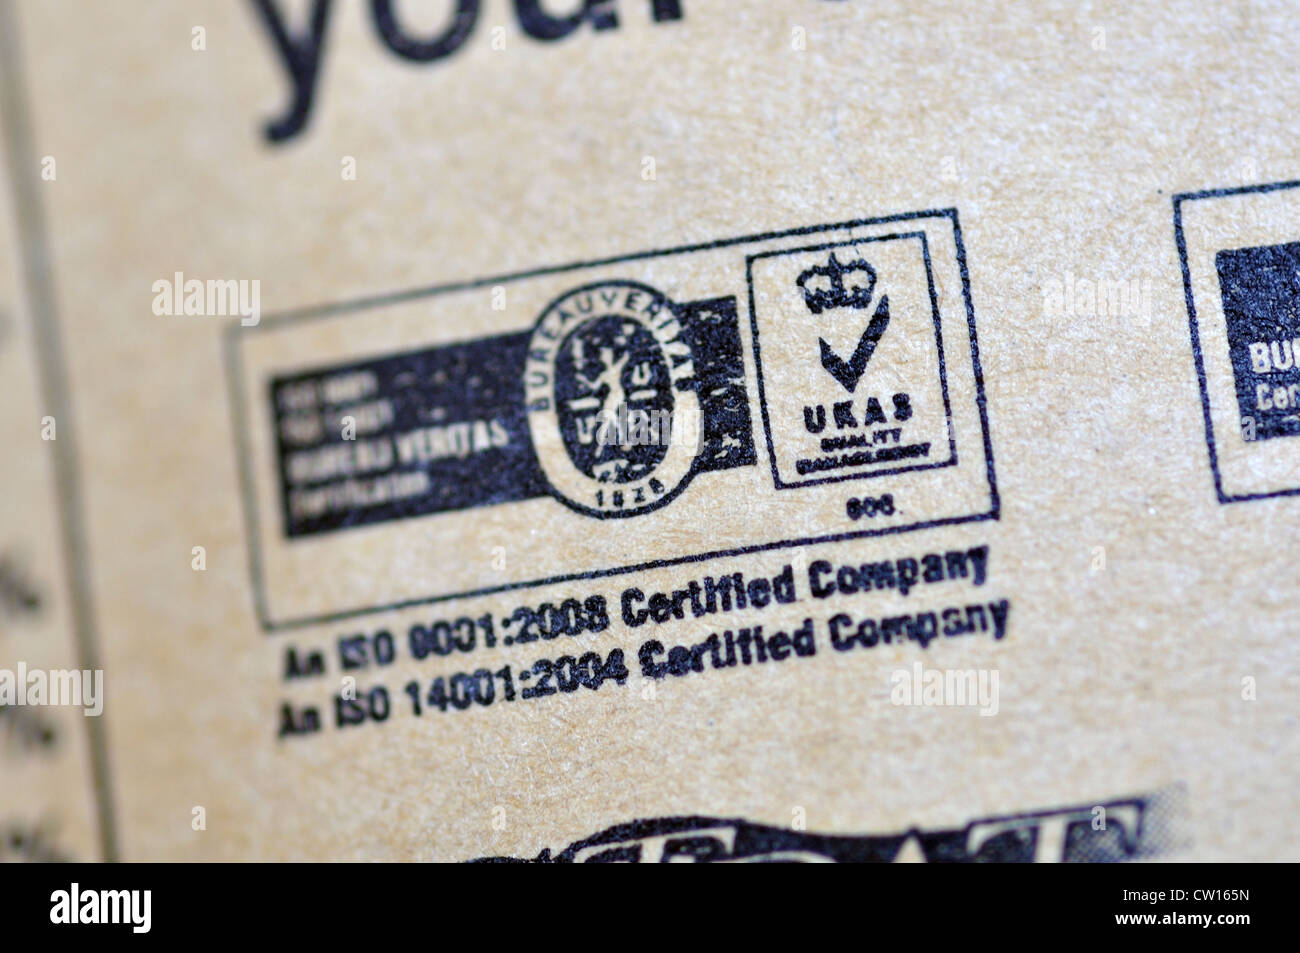 ISO Certified on food package - Stock Image